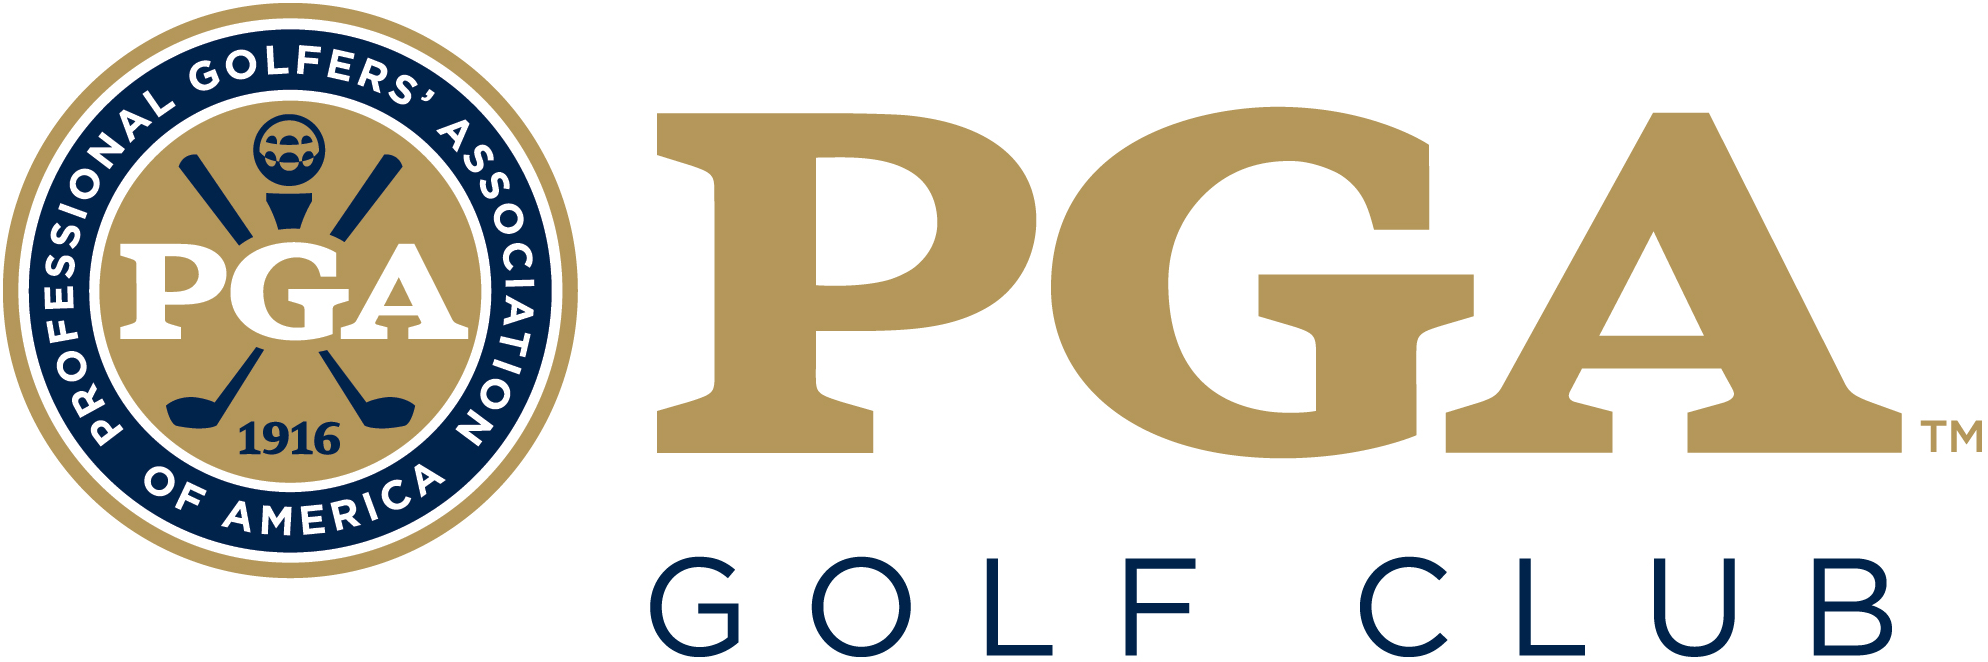 HOPE - PGA | Center for Golf Learning & Performance